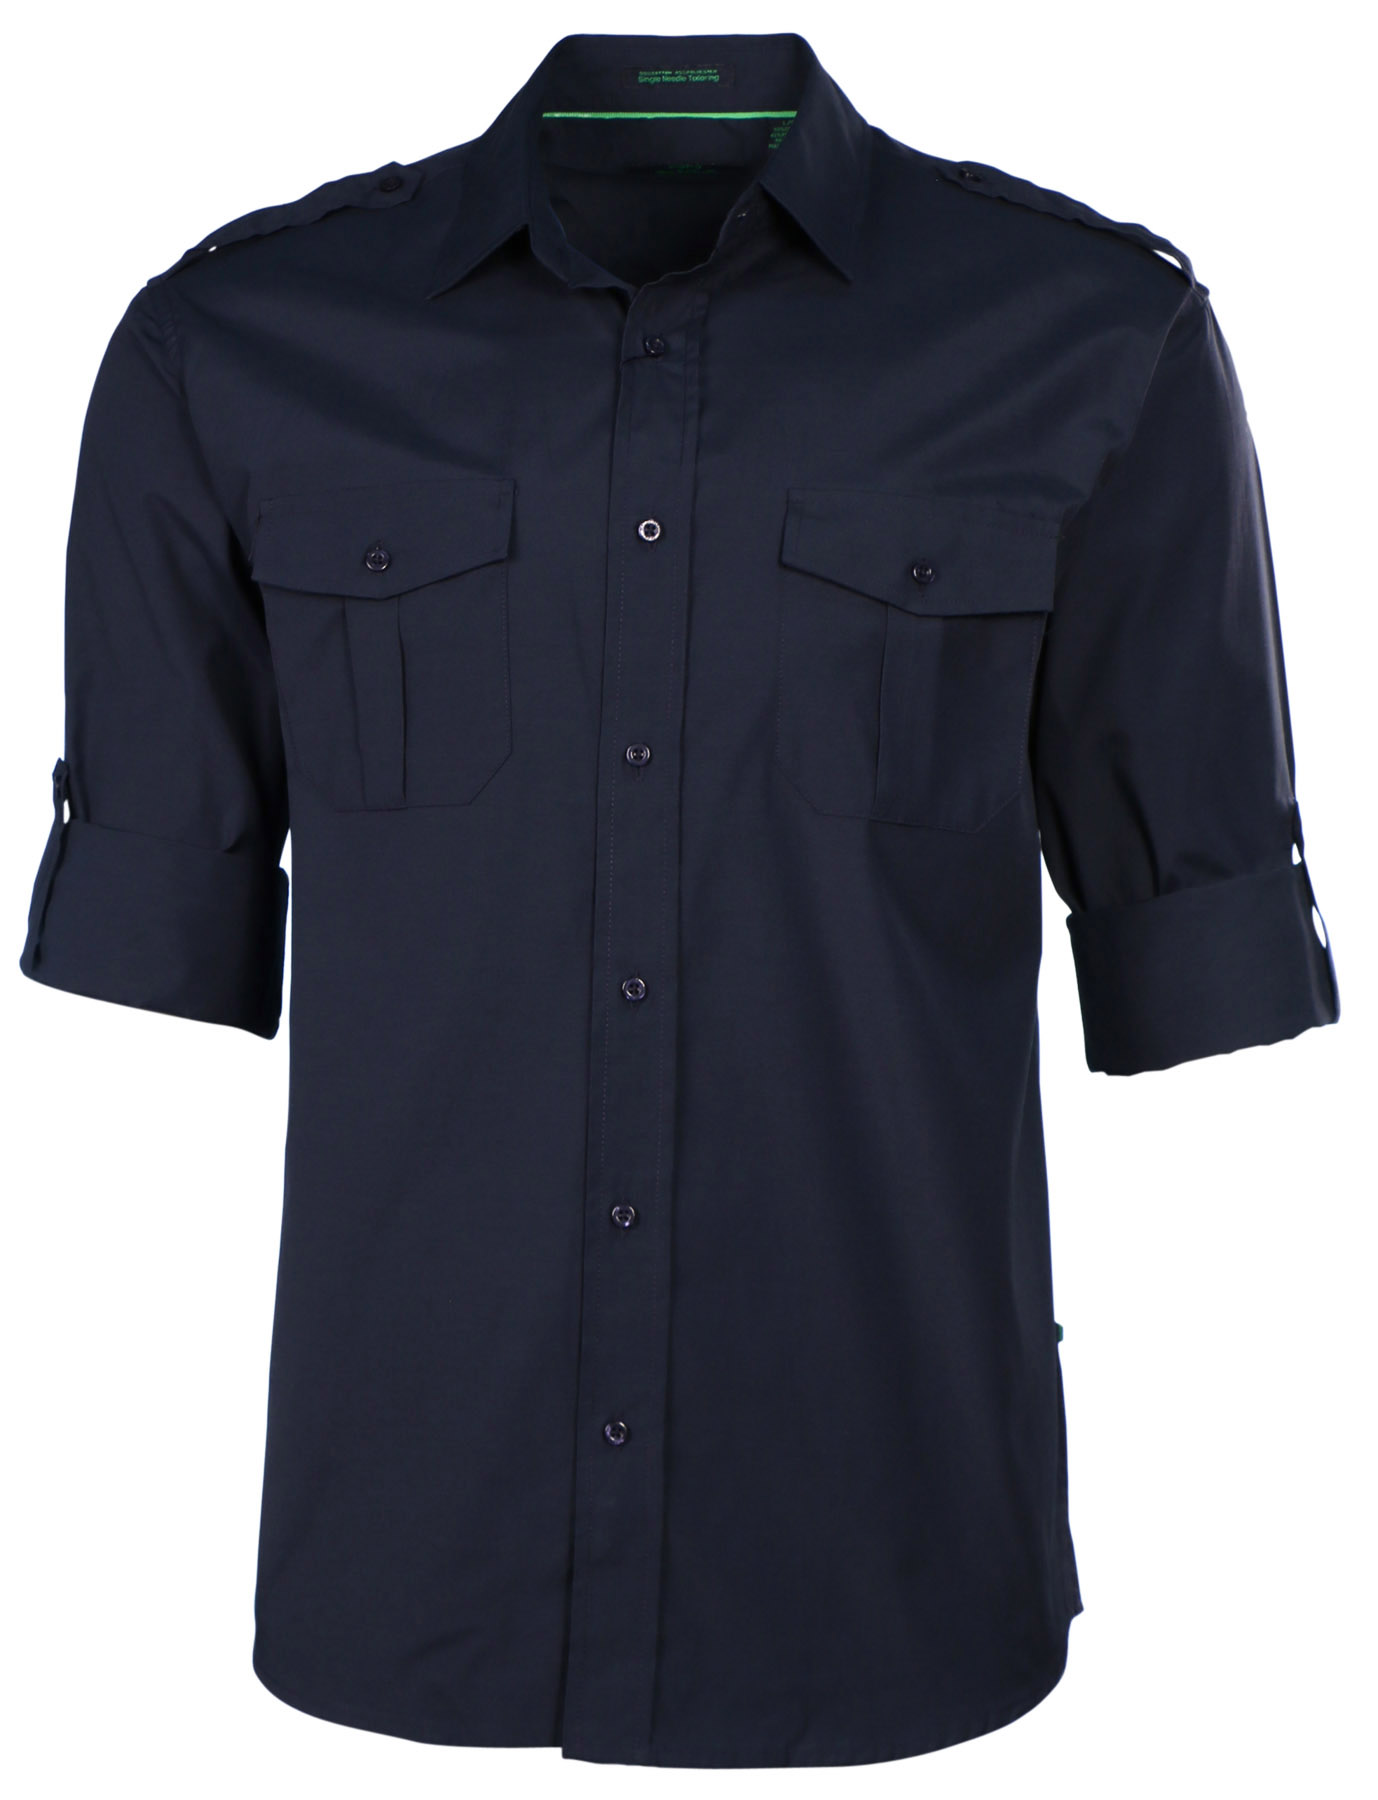 Shop coolnup03t.gq for a wide variety of men's button-down casual and dress shirts including short sleeve and long sleeve shirts. Free Shipping Available.